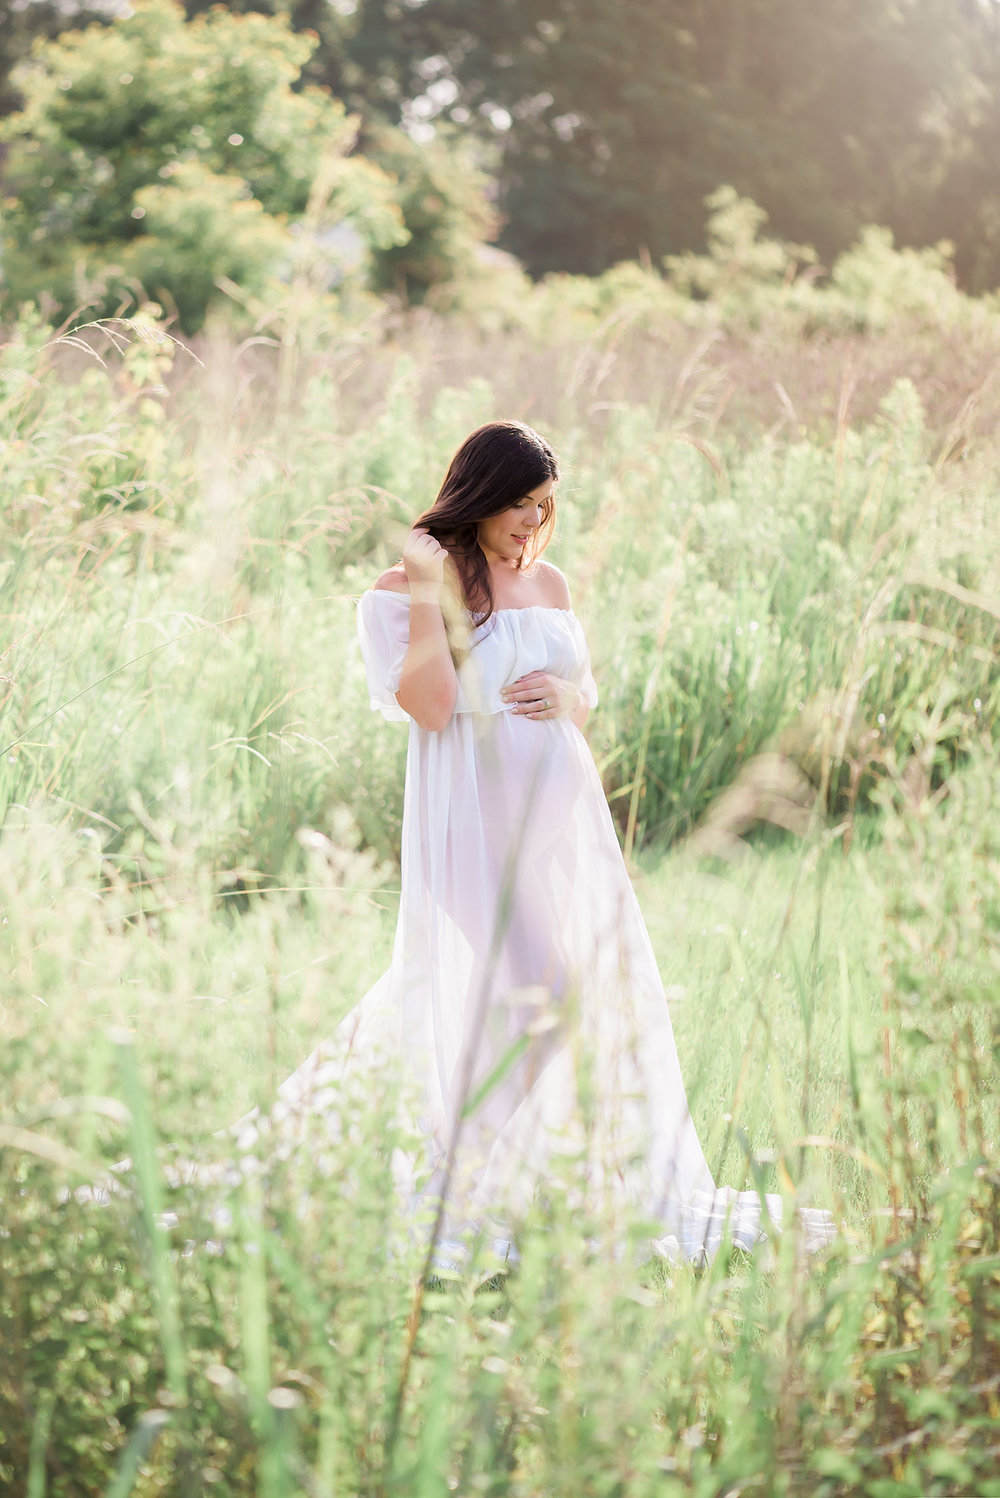 maternity-photography-studios-richmond-hill-savannah-pooler-ga2.jpg